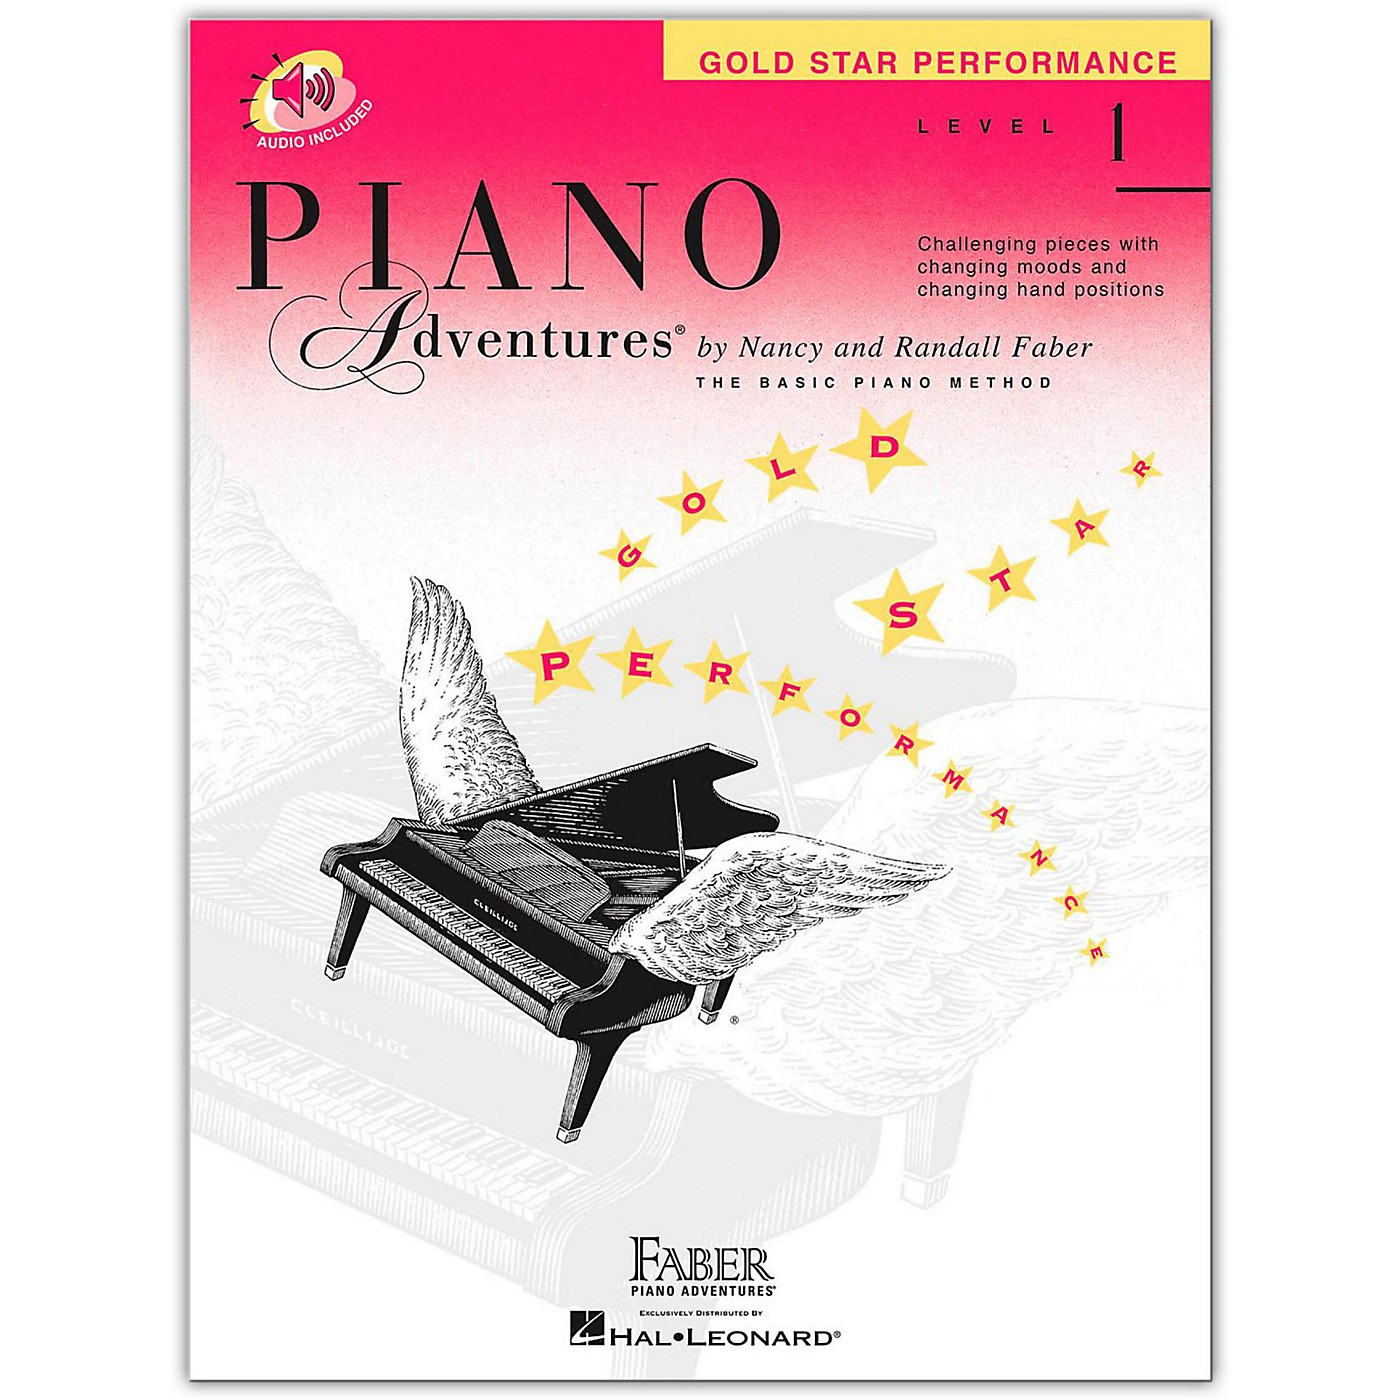 Faber Piano Adventures Piano Adventures Gold Star Performance Level 1 - Faber Piano (Book/Online Audio) thumbnail